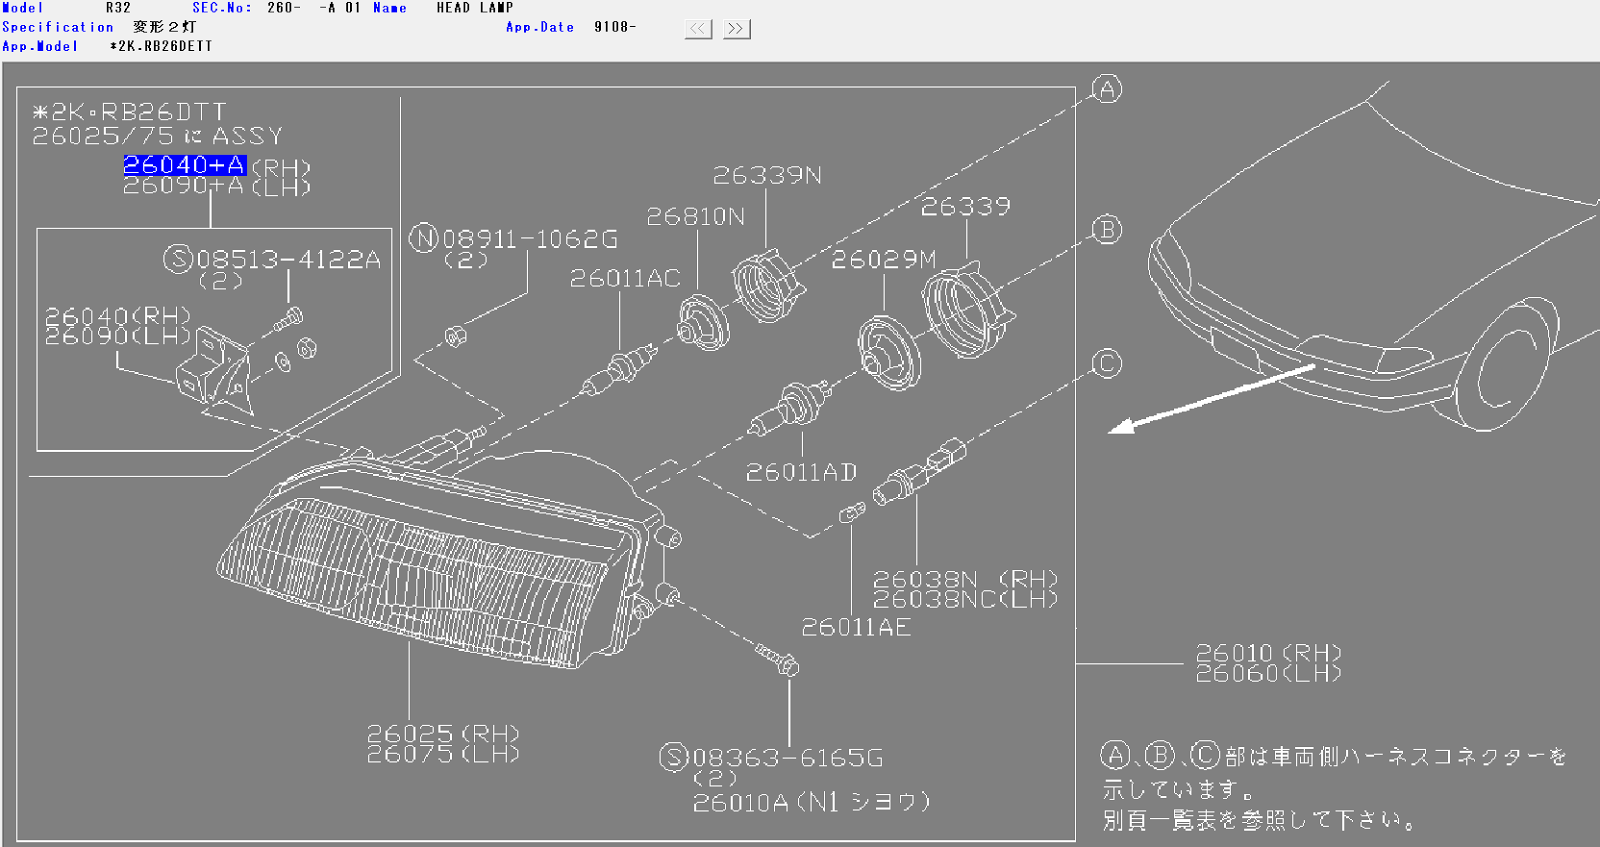 R Bn Bheadlamp on Projector Headlight Wiring Diagram For Nissan Skyline